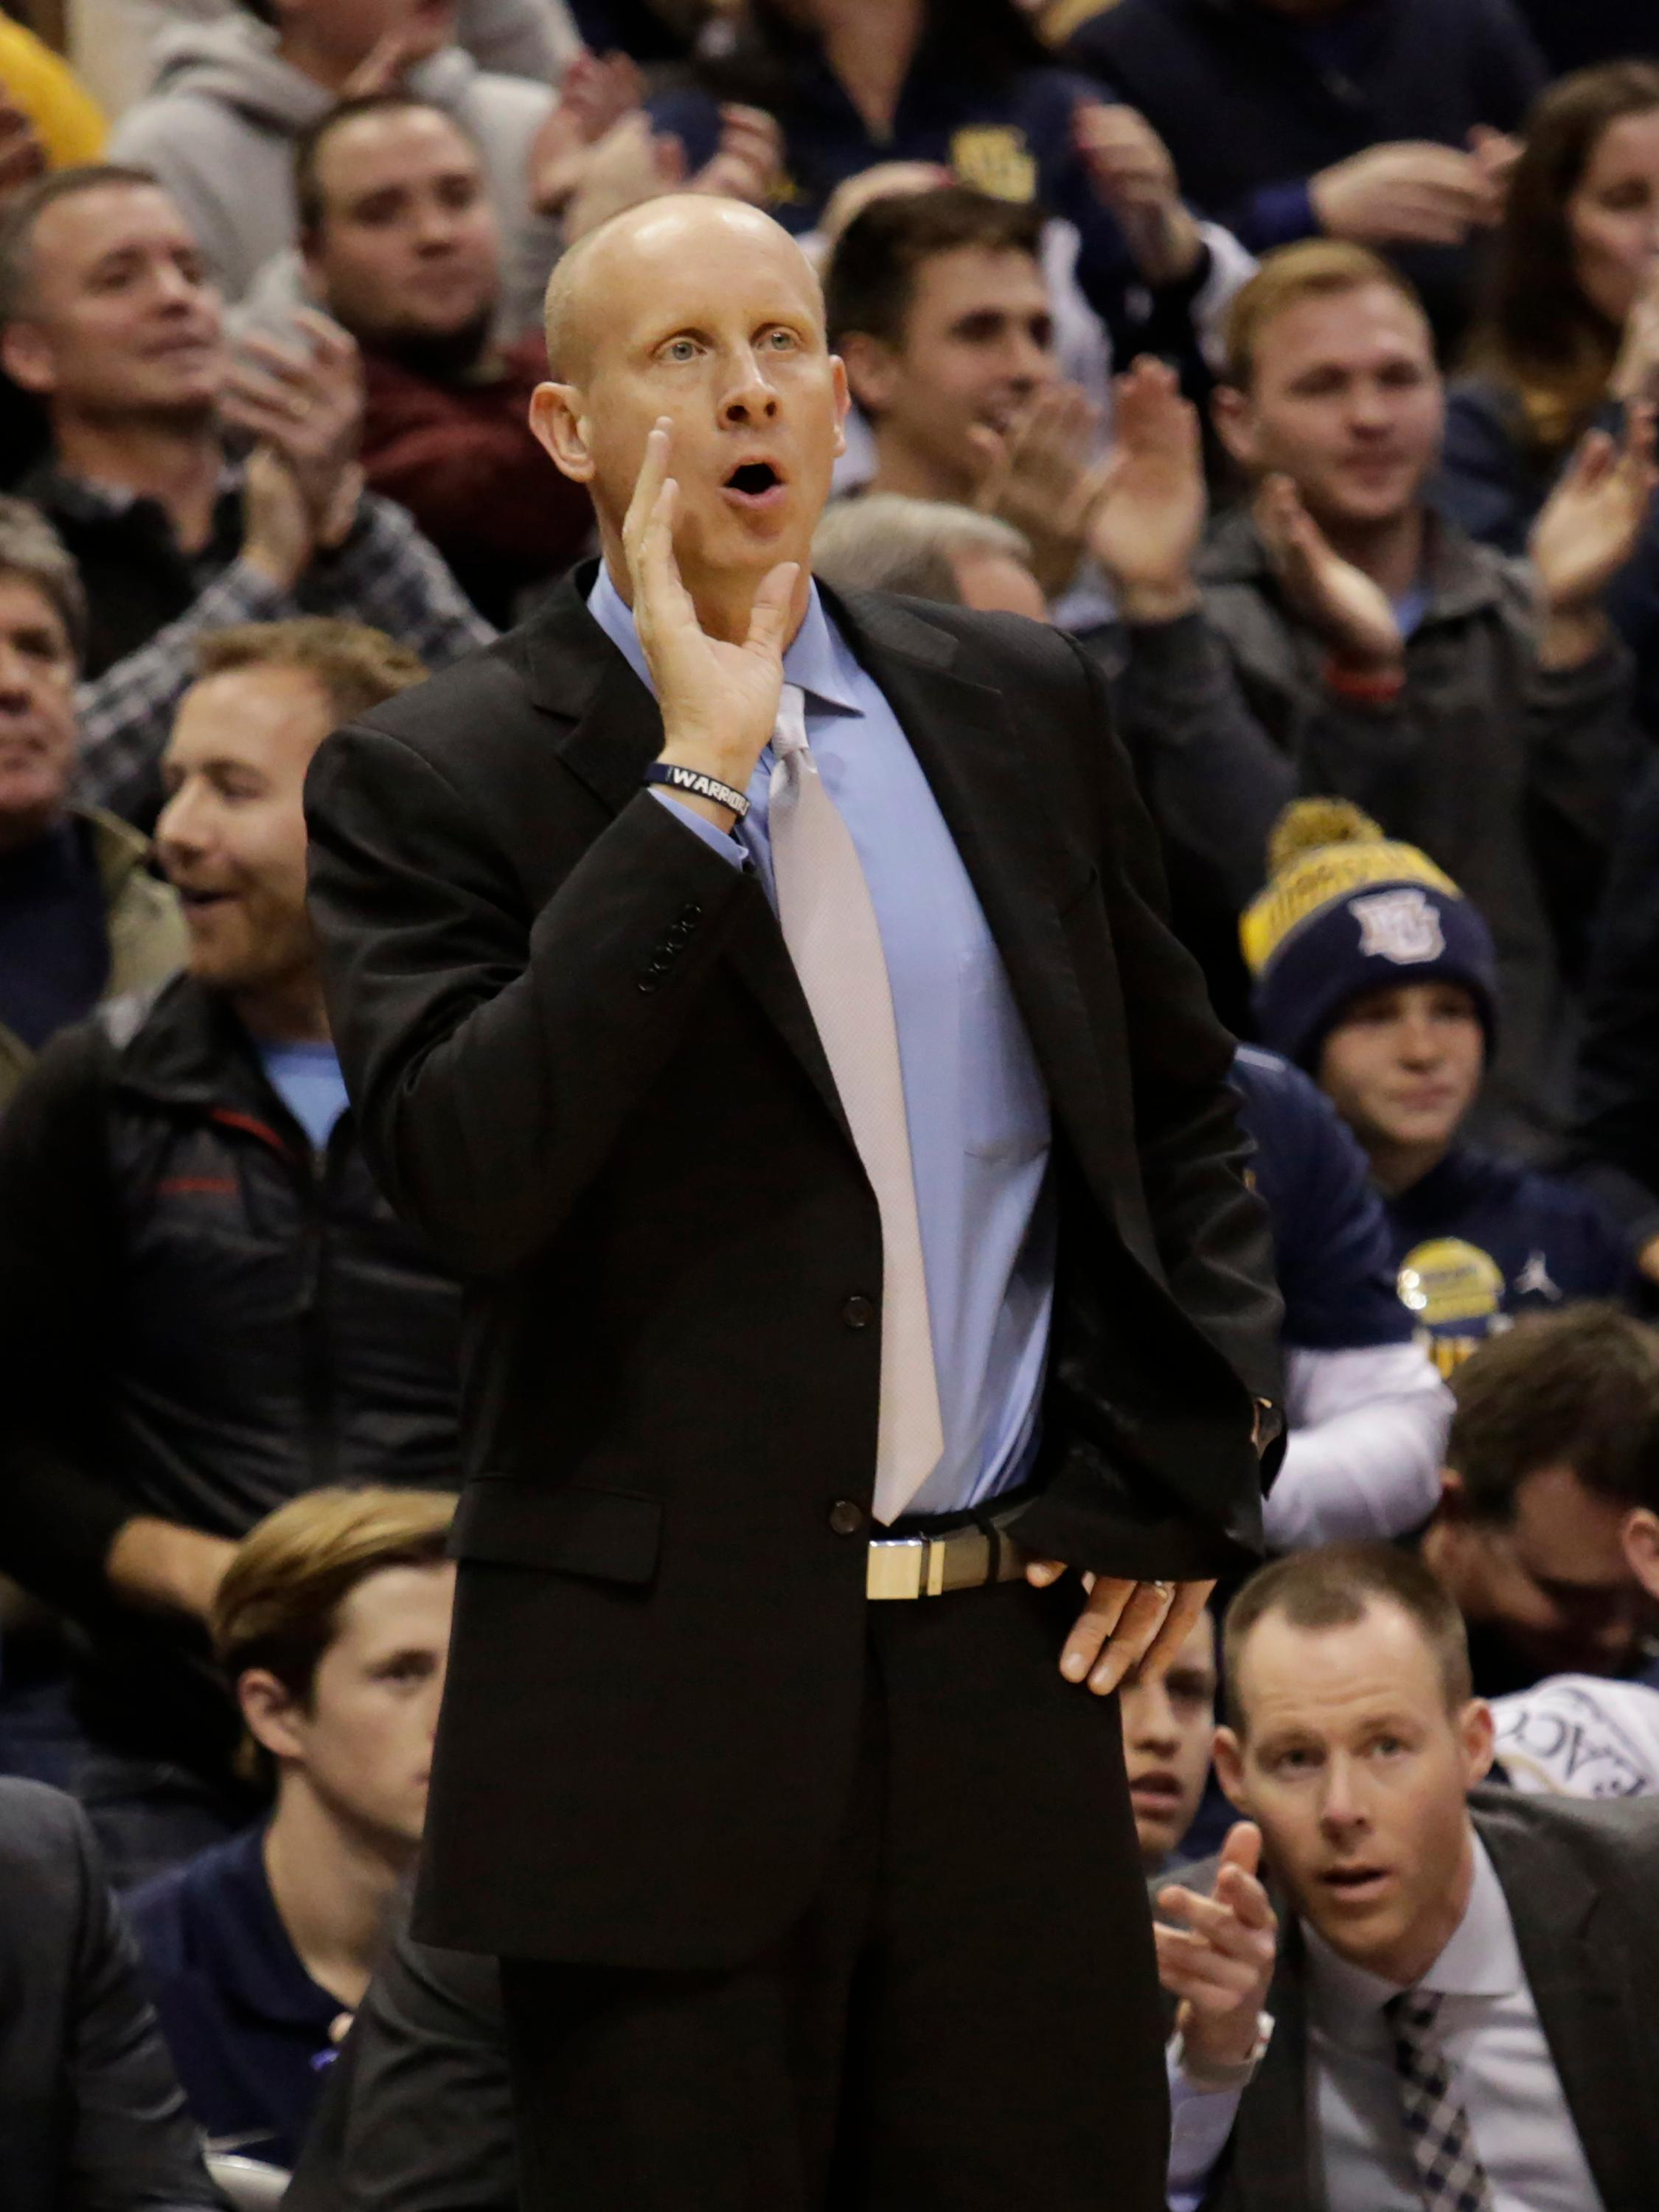 Xavier head coach Chris Mack calls out his players as they take on Marquette during the first half of a basketball game, Wednesday, Dec. 27, 2017, in Milwaukee. (AP Photo/Darren Hauck)